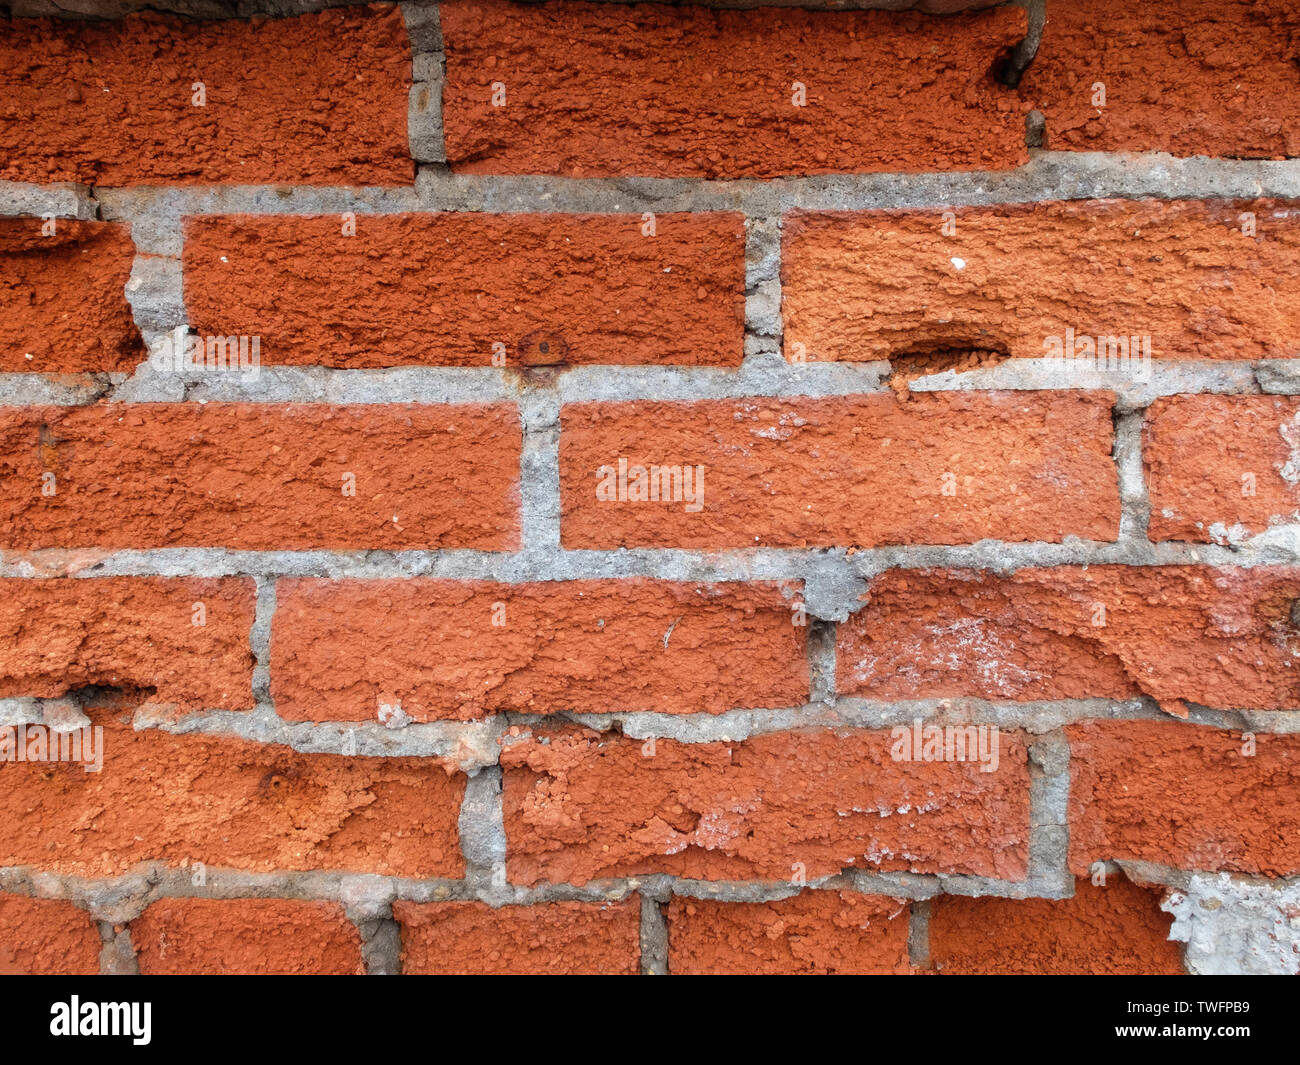 Decaying of erosion red brick wall of 18th century building - Stock Image